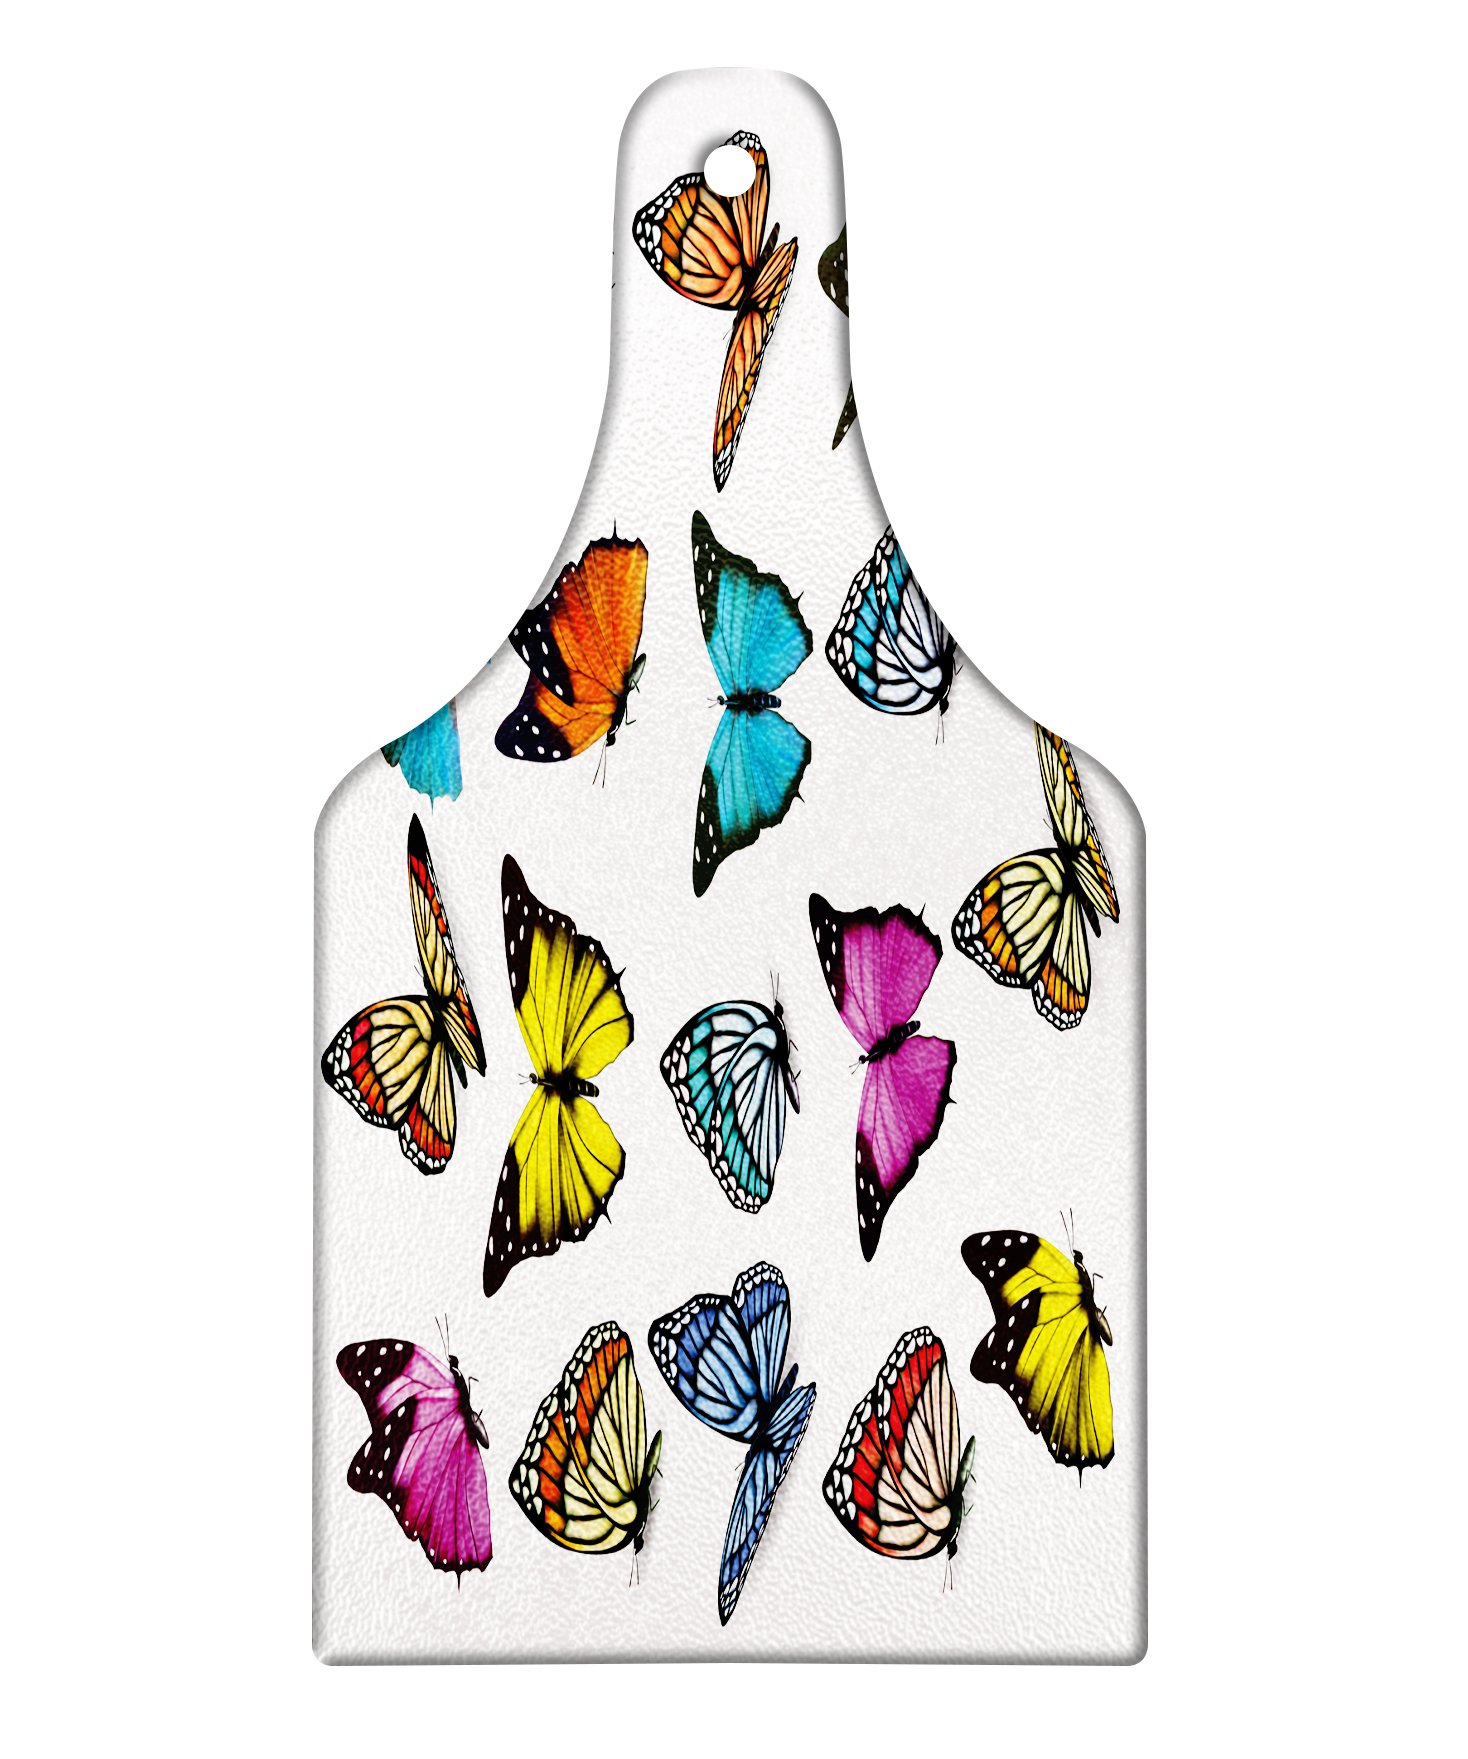 Ambesonne Animal Cutting Board, Big Collection of Colorful Butterflies Flying Artistic Composition Summertime Print, Decorative Tempered Glass Cutting and Serving Board, Wine Bottle Shape, Multicolor